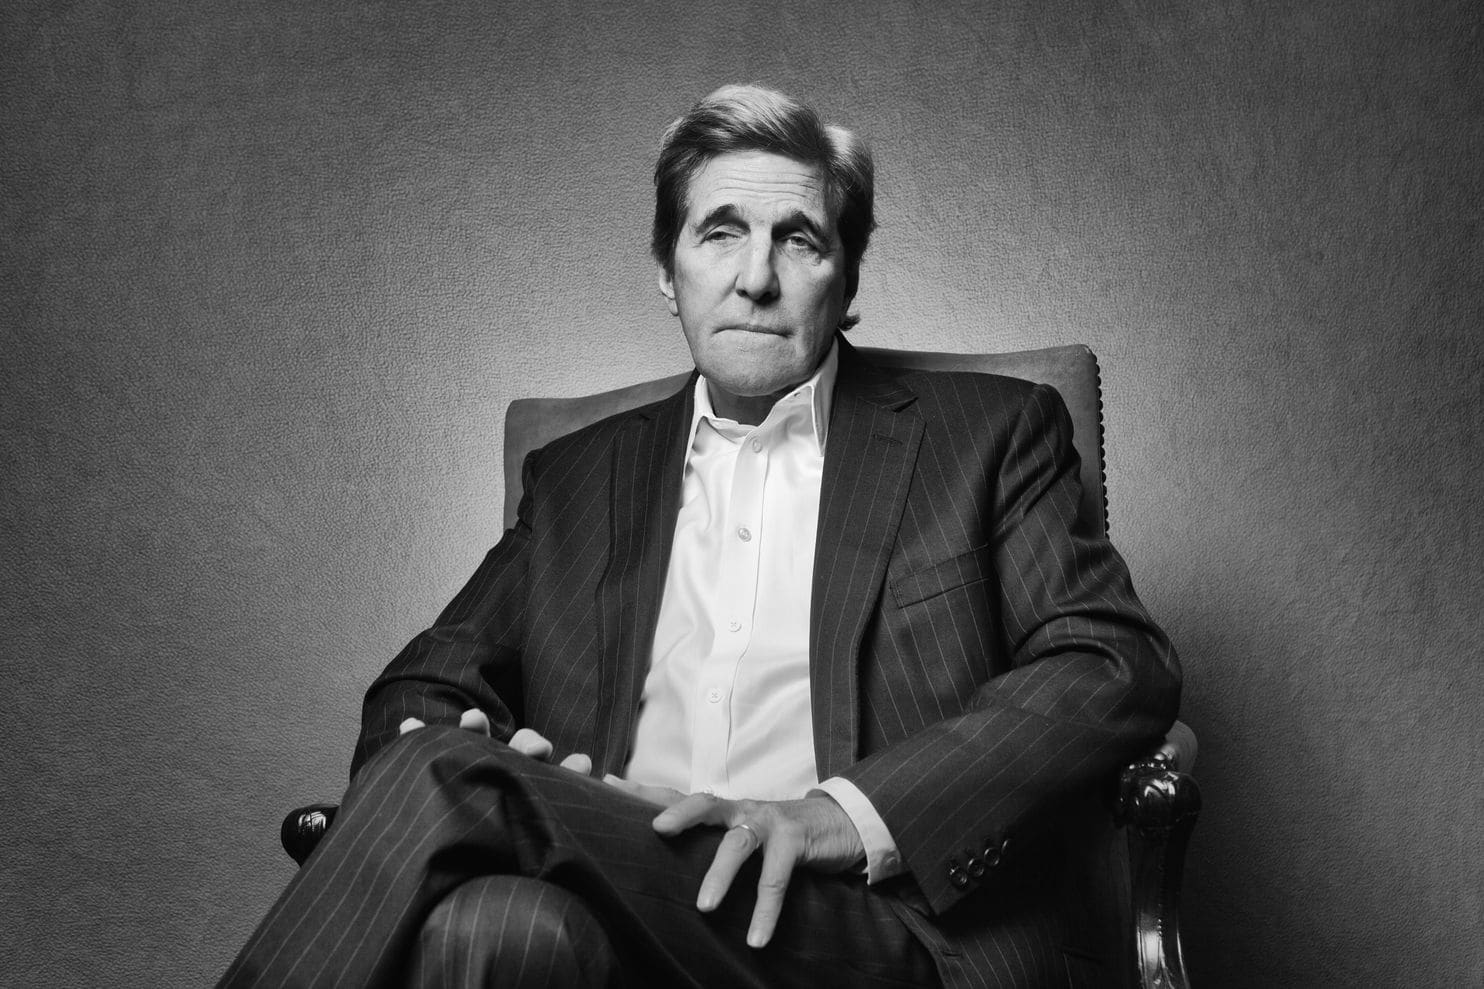 John Kerry served as secretary of state under President Barack Obama. (KK Ottesen/For The Washington Post)